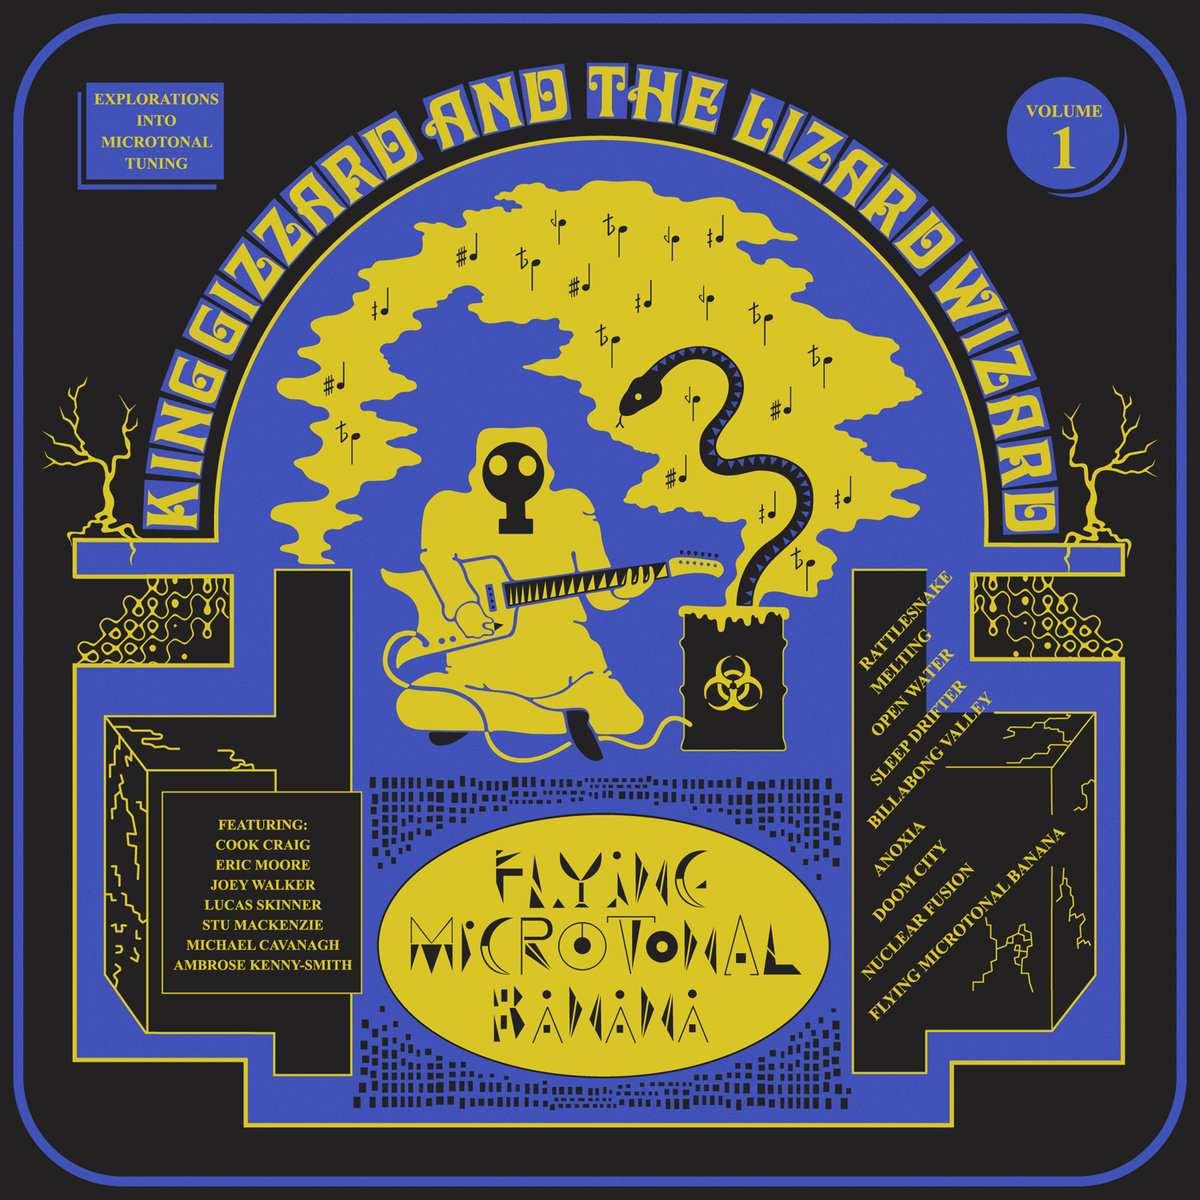 King Gizzard & The Lizard Wizard: Flying Microtonal Banana